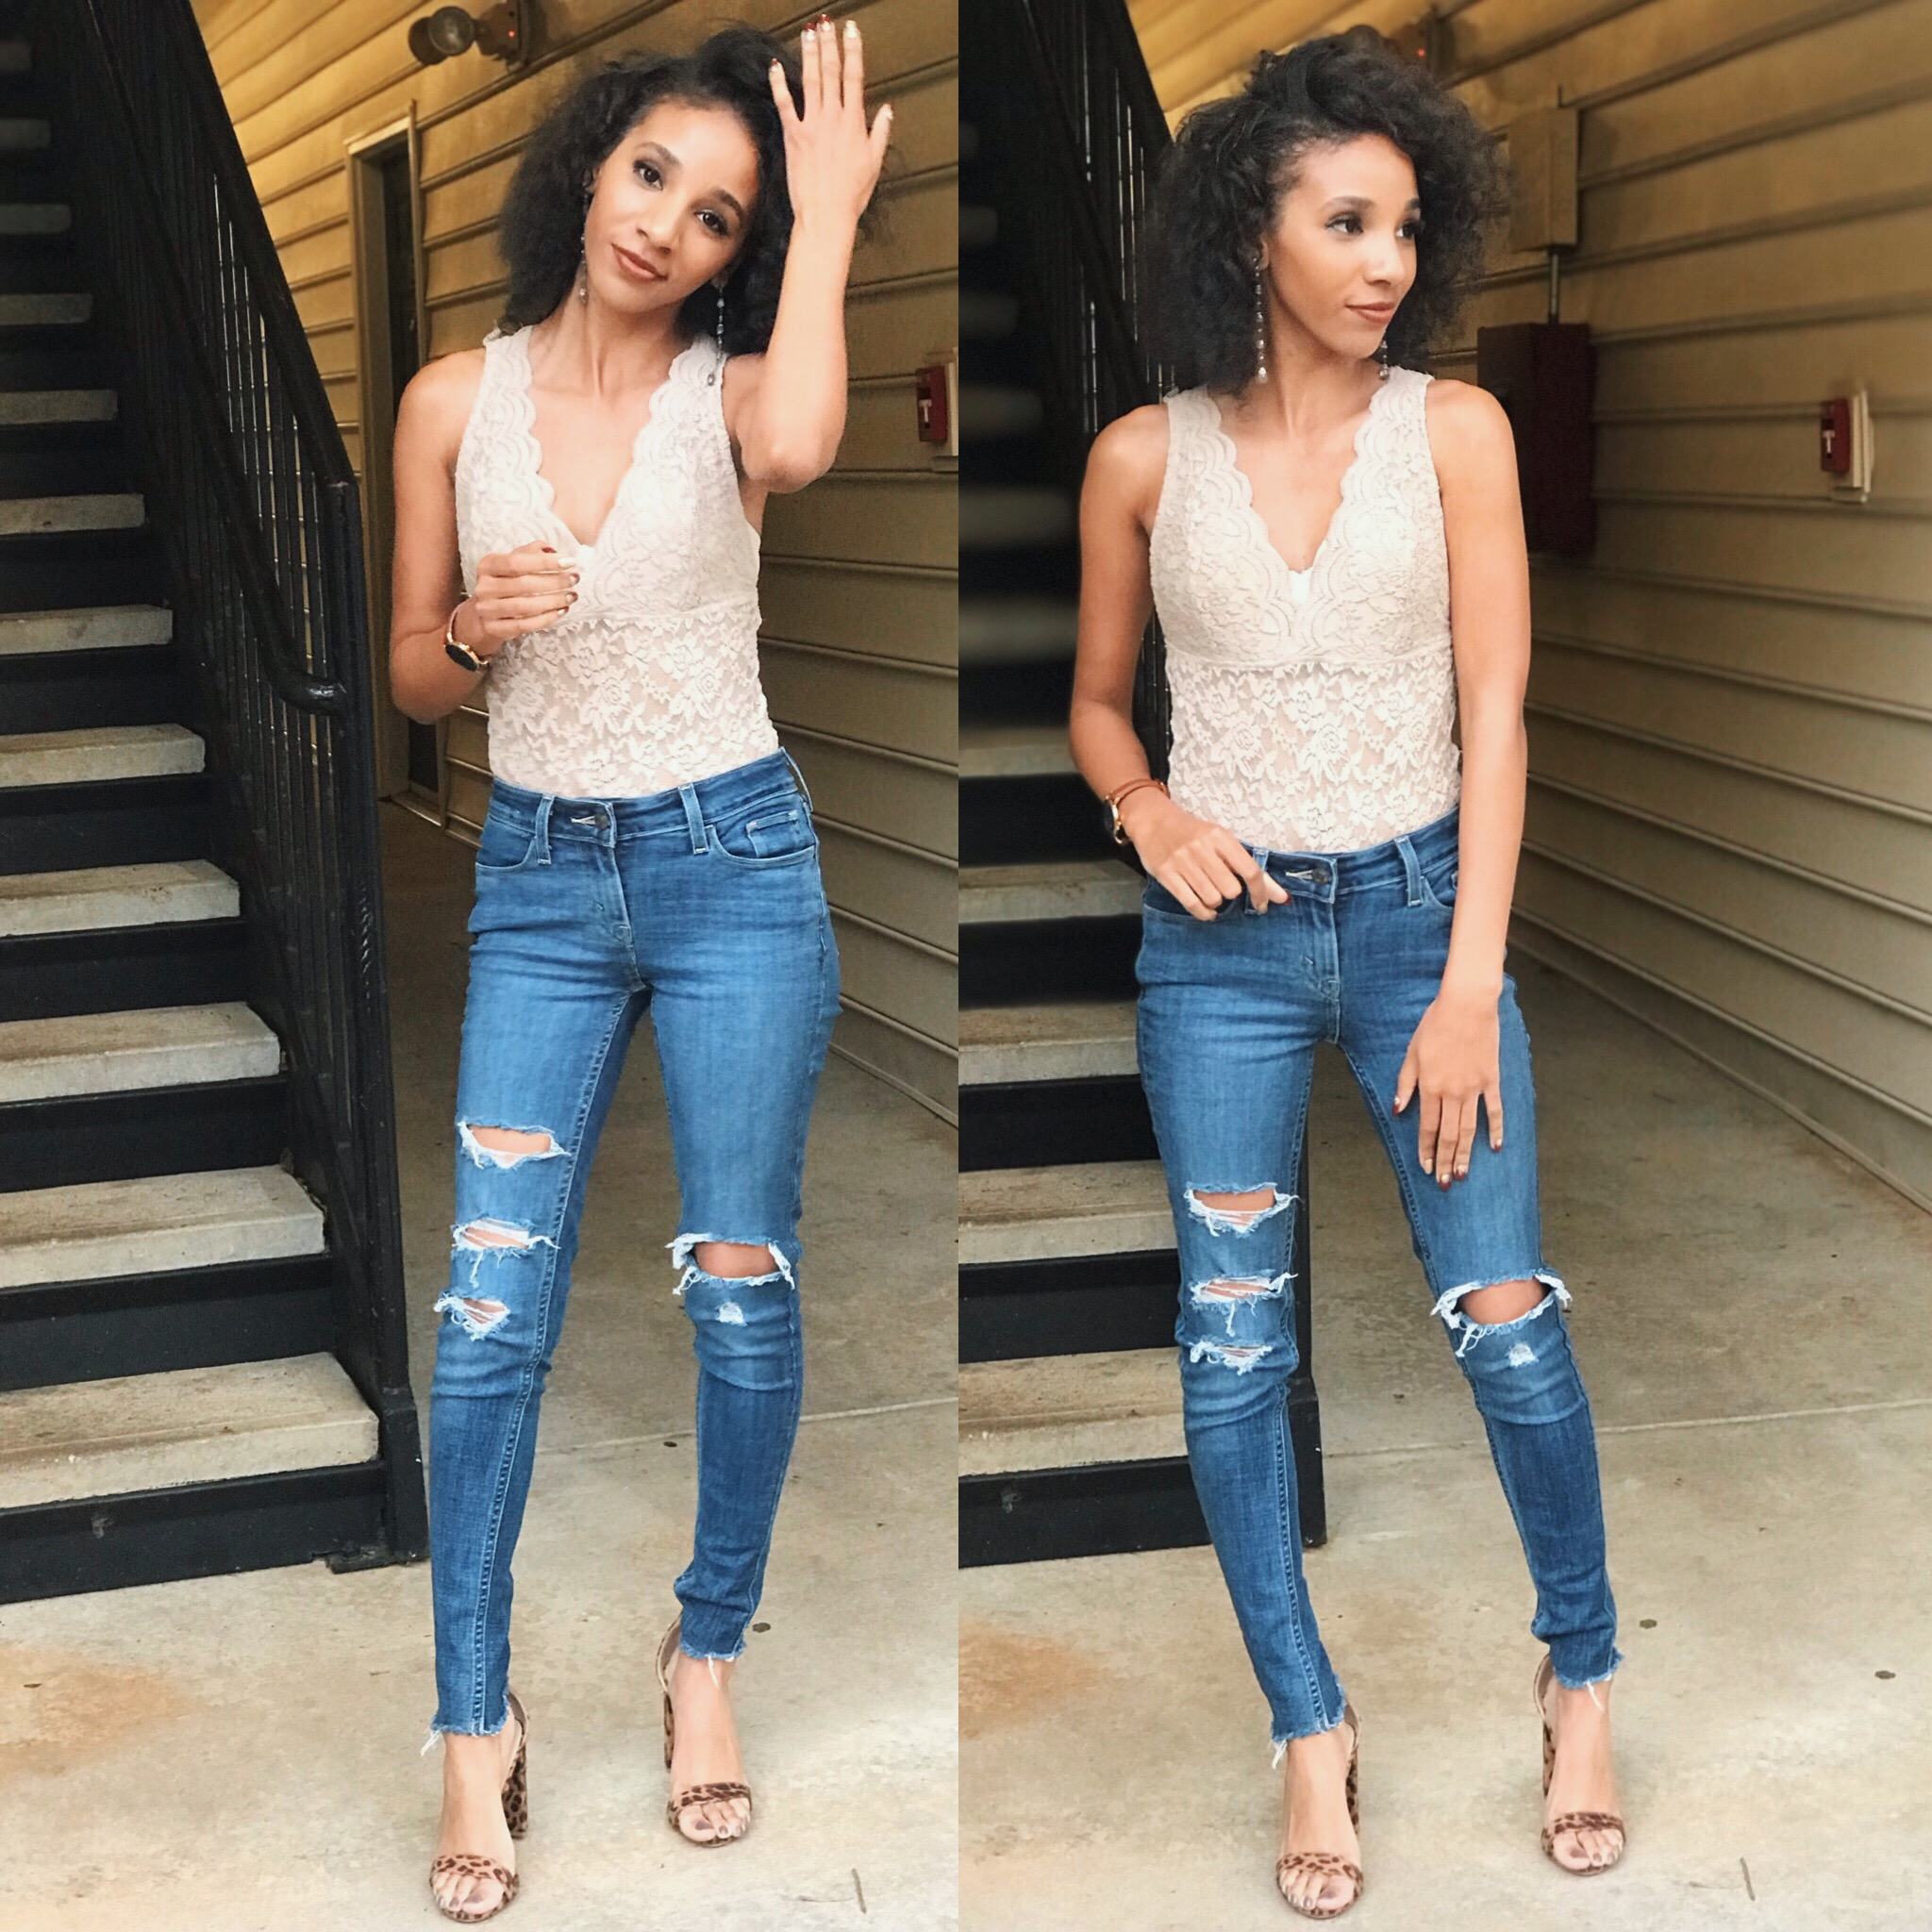 Ripped Levi Jeans:Dillard's  Tan Laced V-neck Bodysuit: Rainbow  Cheetah Print Ankle Strapped Heels: Rue 21